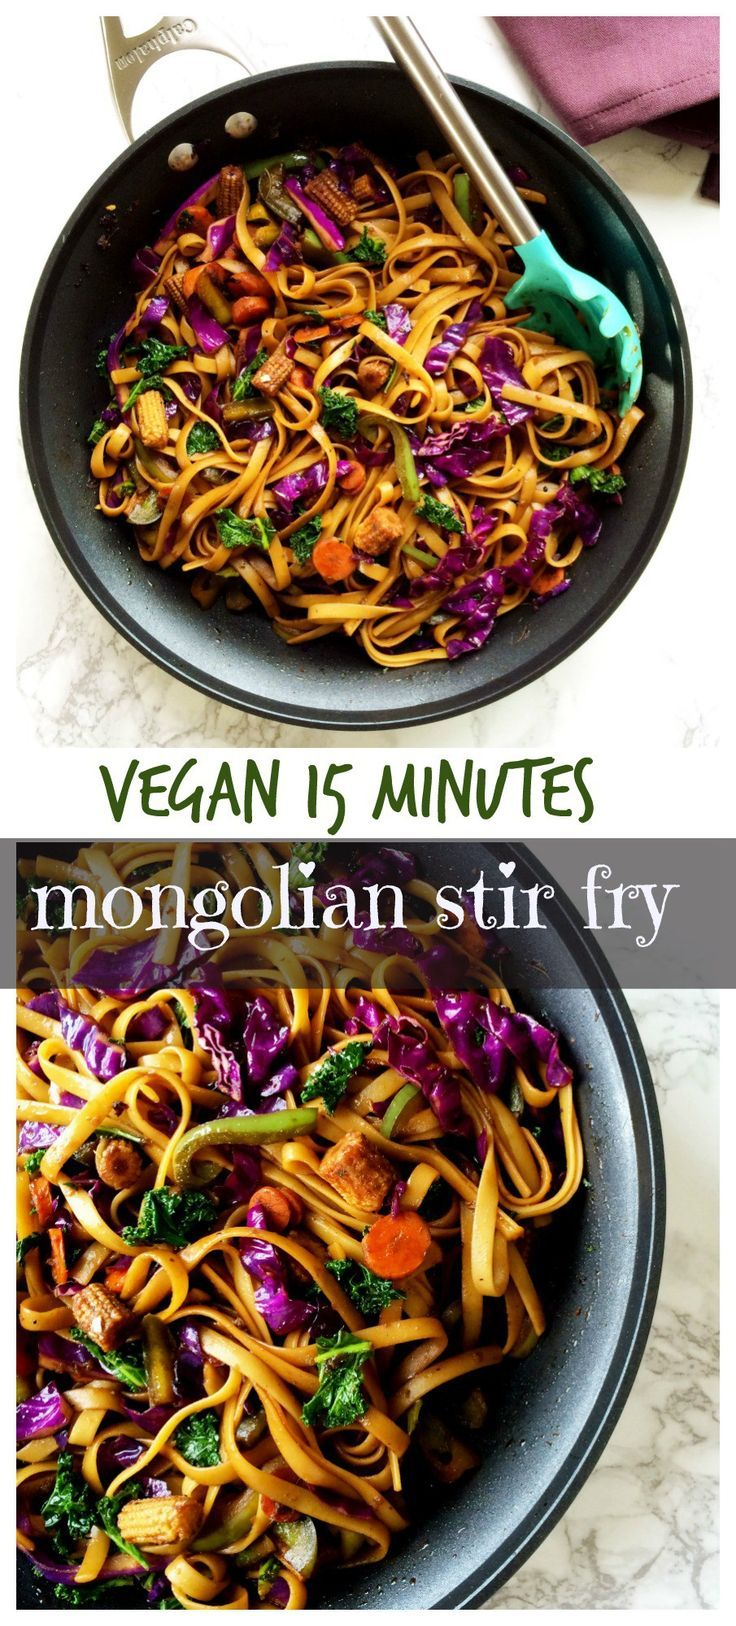 Vegan Mongolian noodles and veggies stir fry in spicy soy ginger sauce makes a perfect weeknight meal in minutes .